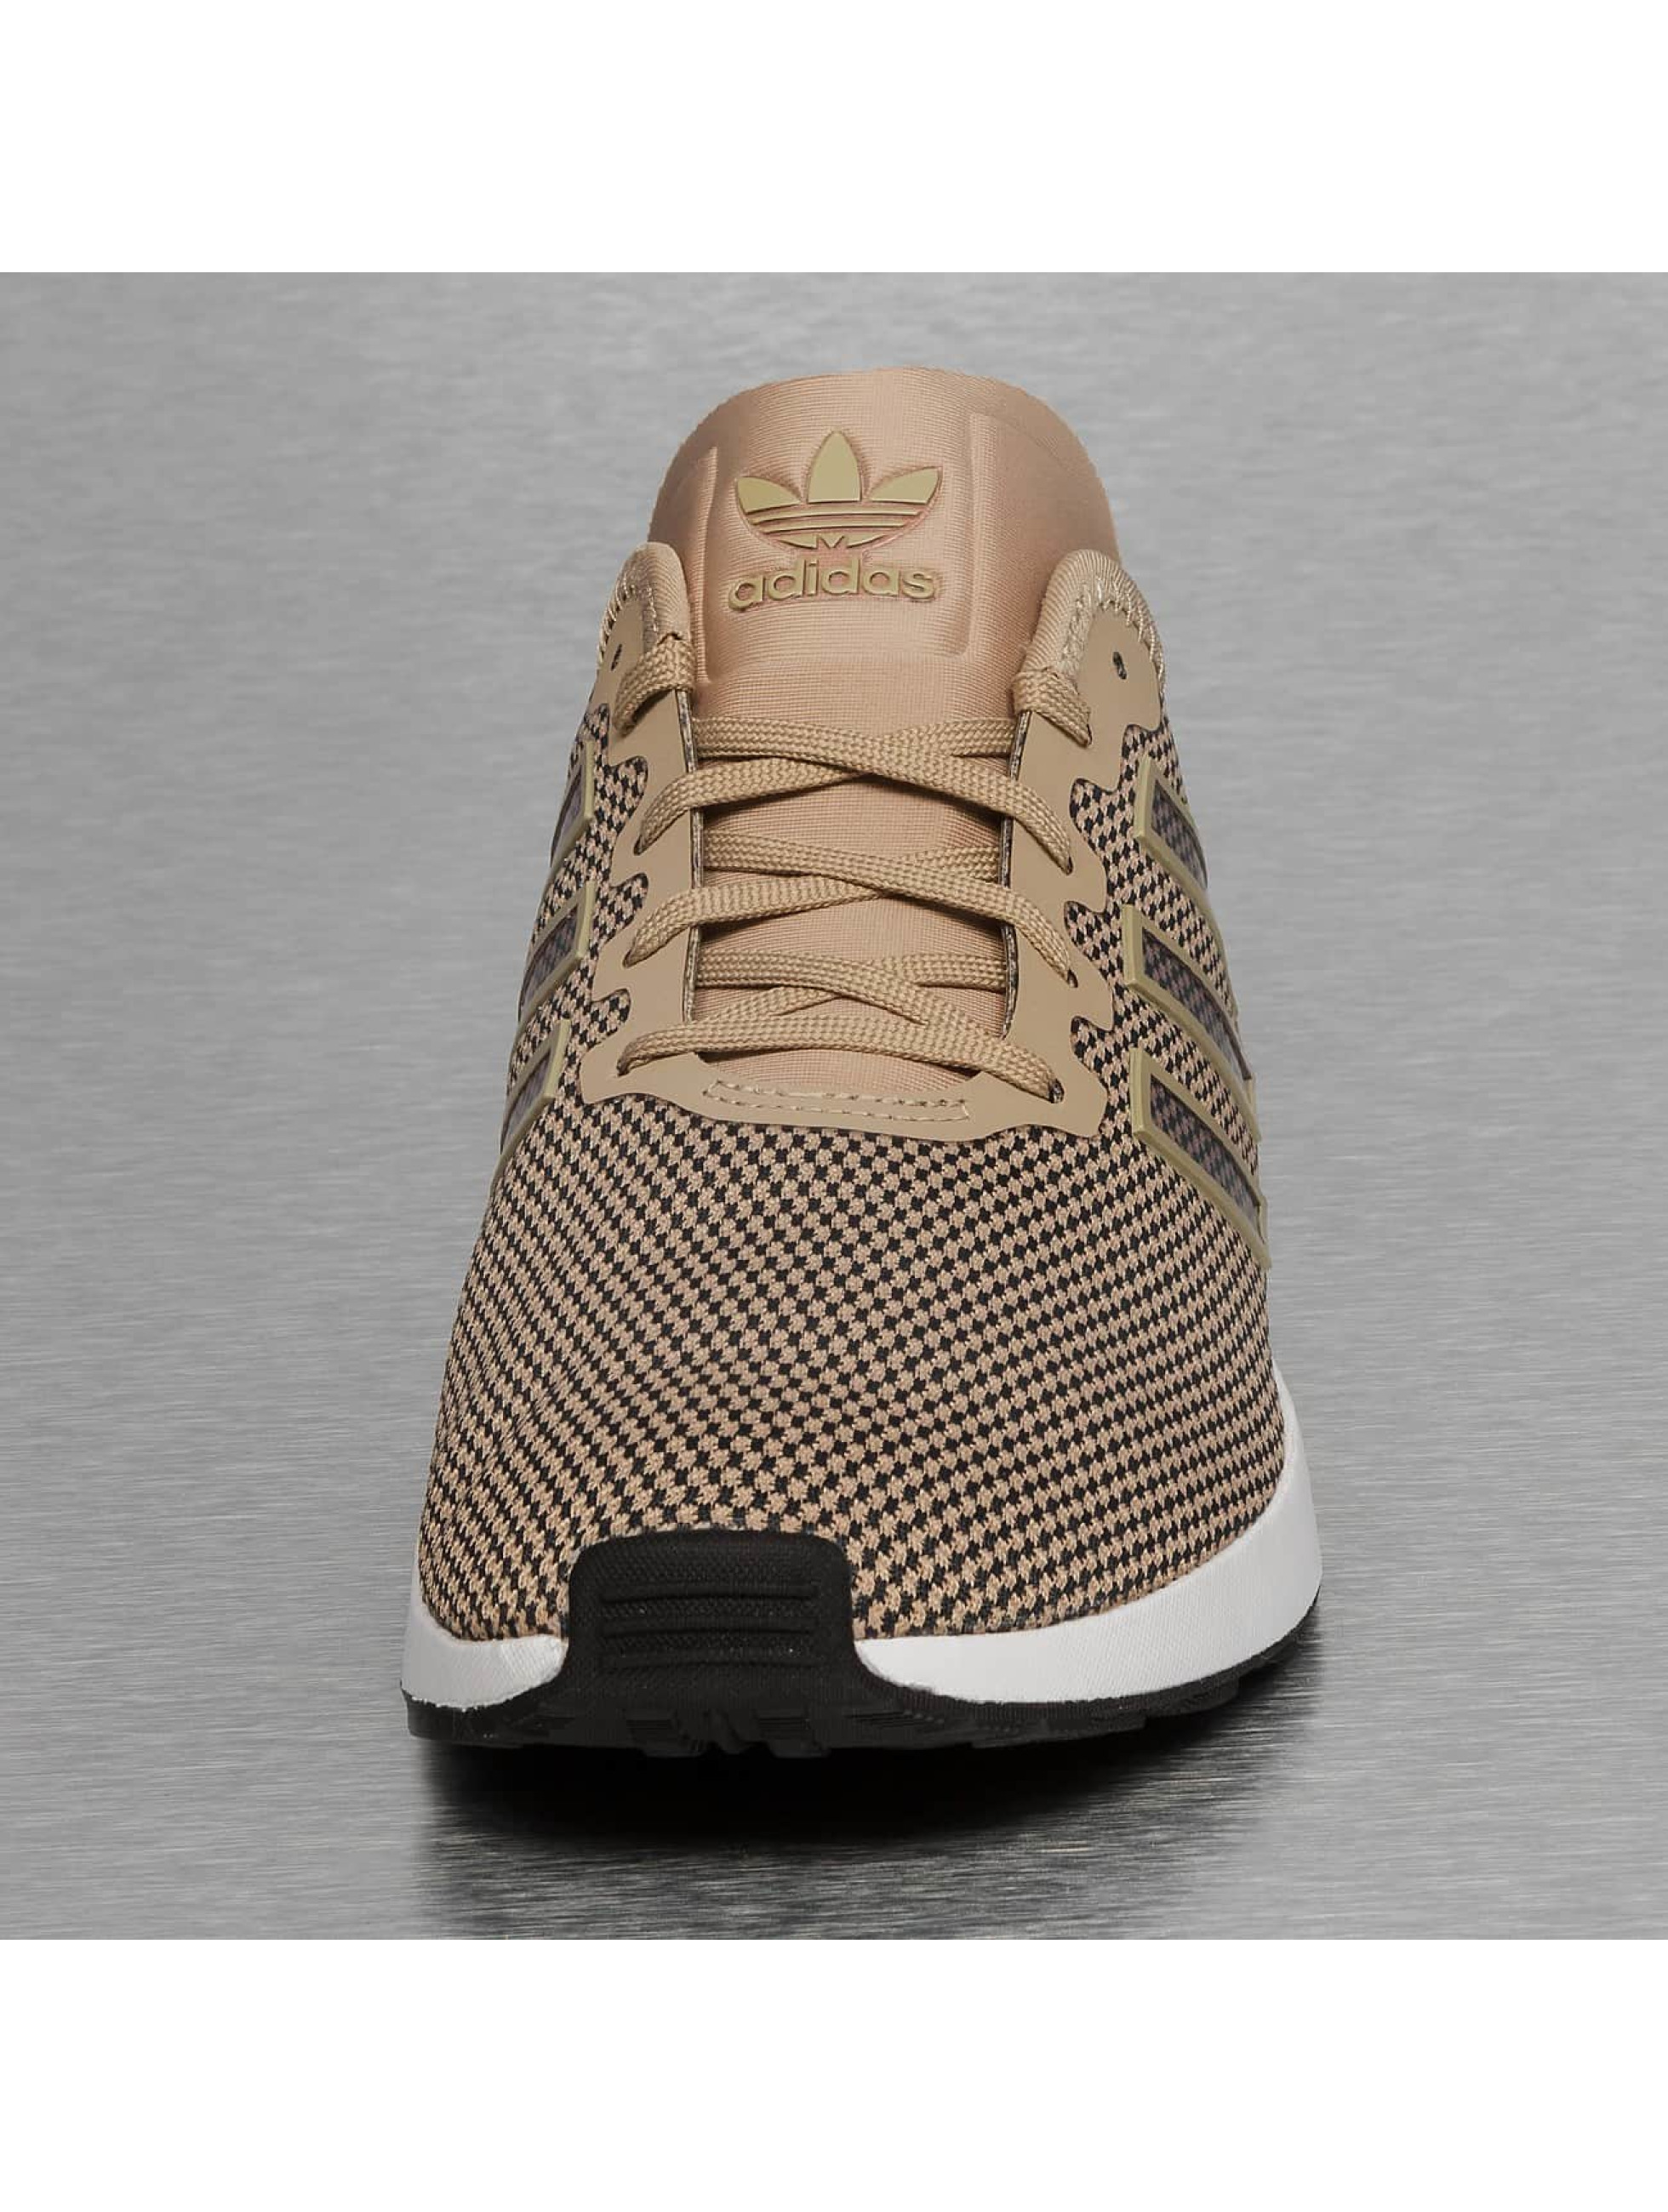 adidas zx flux beige ibs. Black Bedroom Furniture Sets. Home Design Ideas